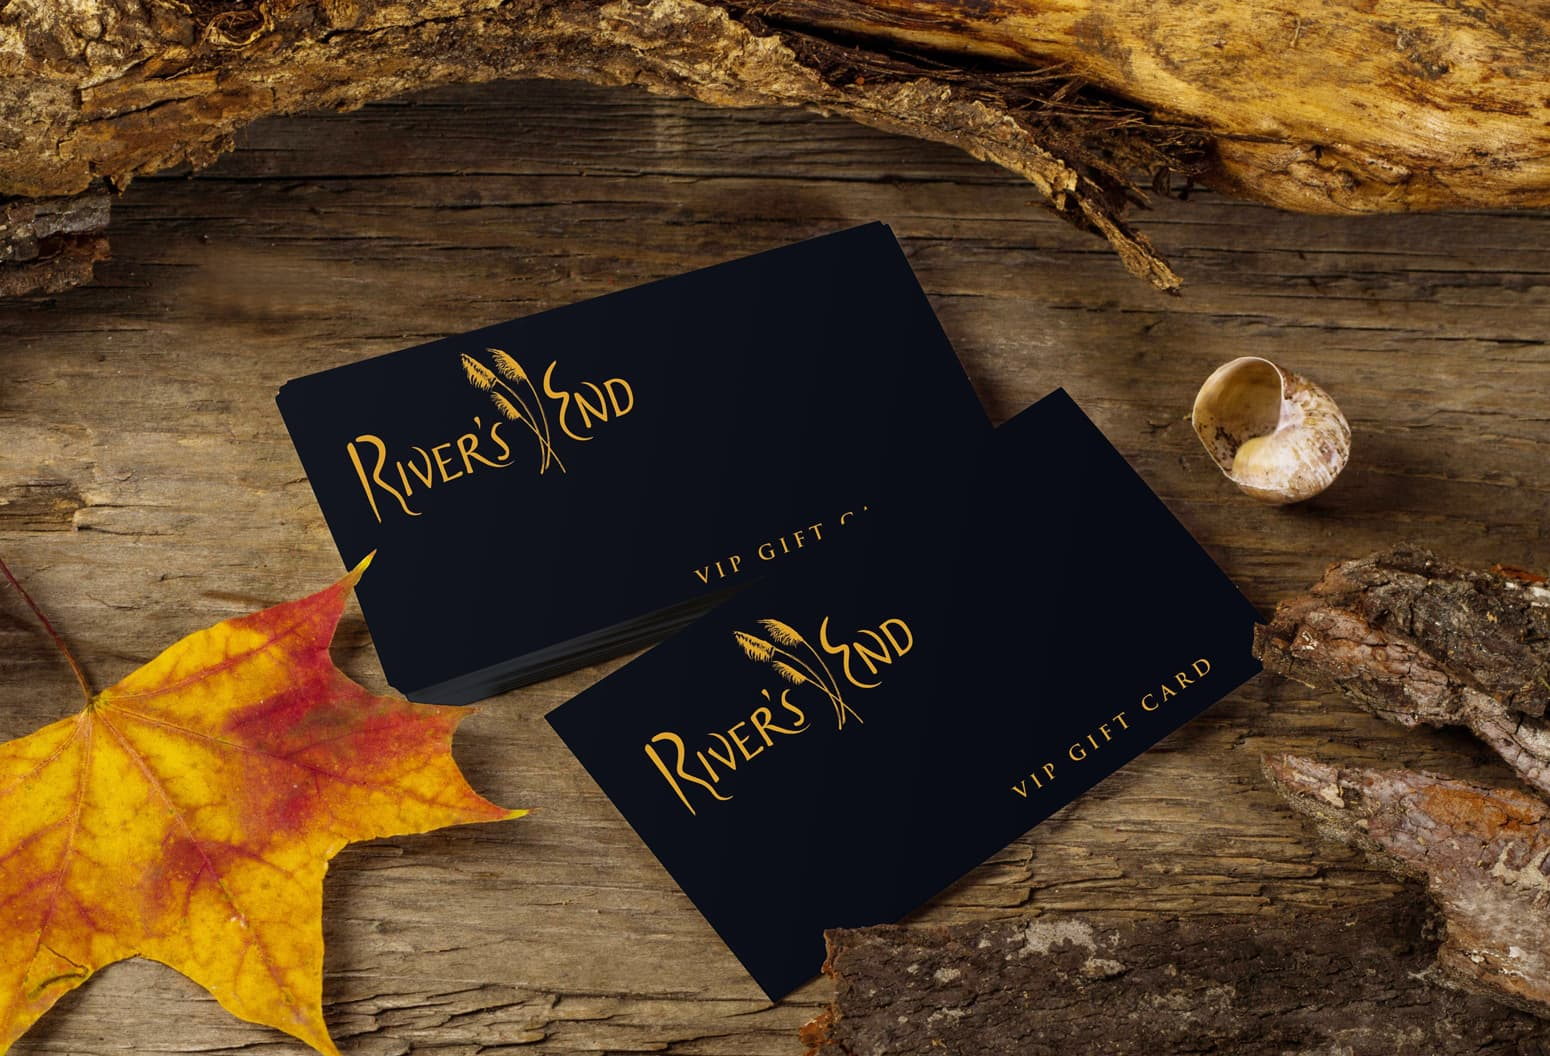 River's End Gift Certificate